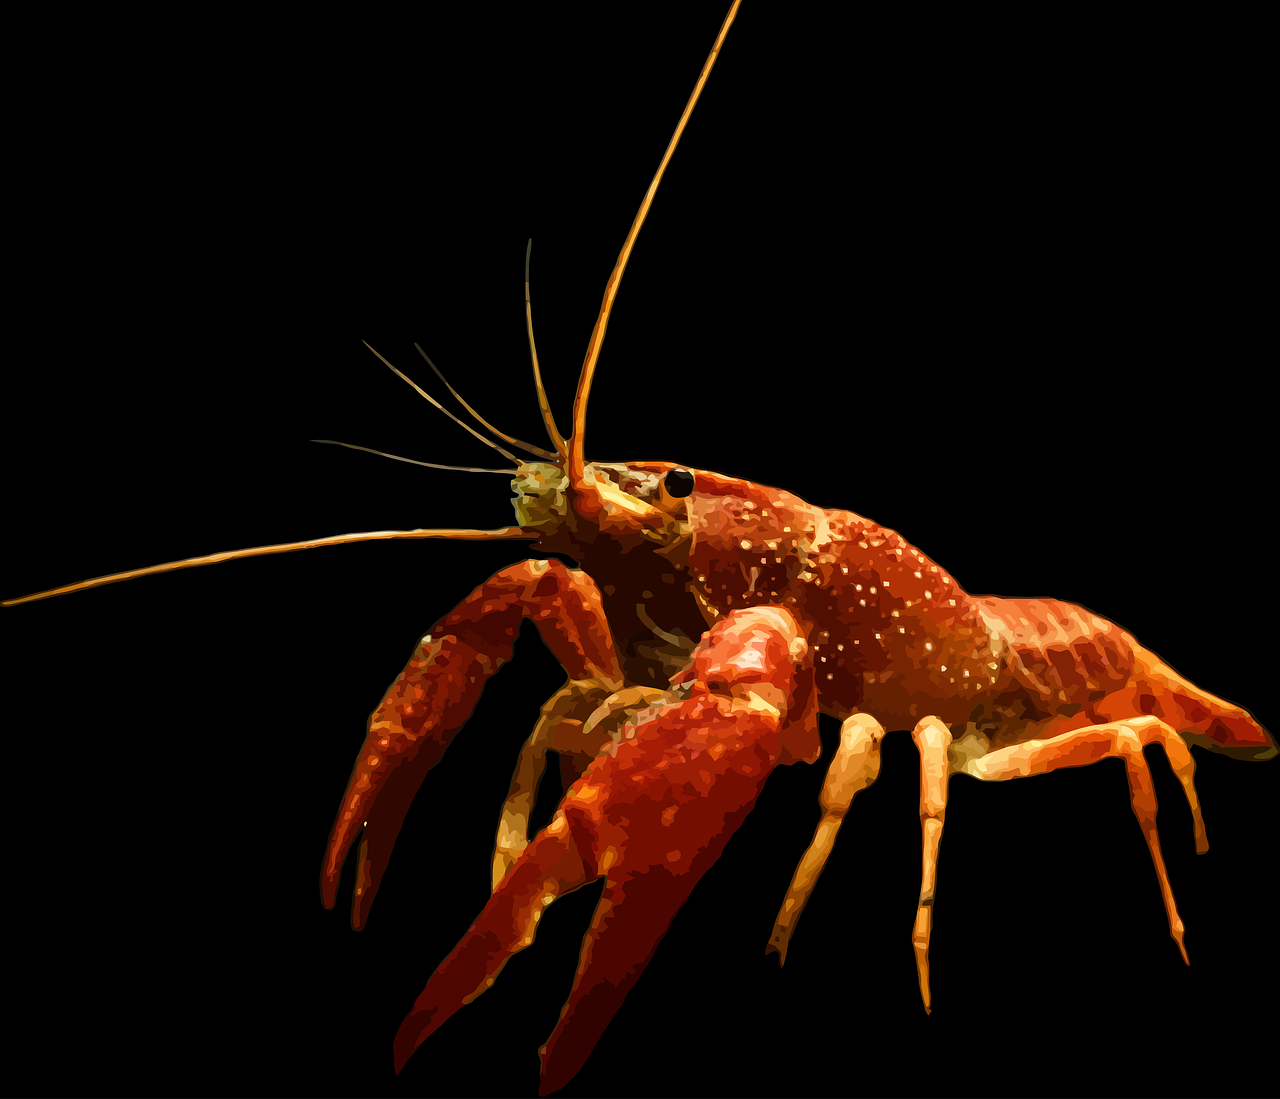 crayfish nature macro free photo